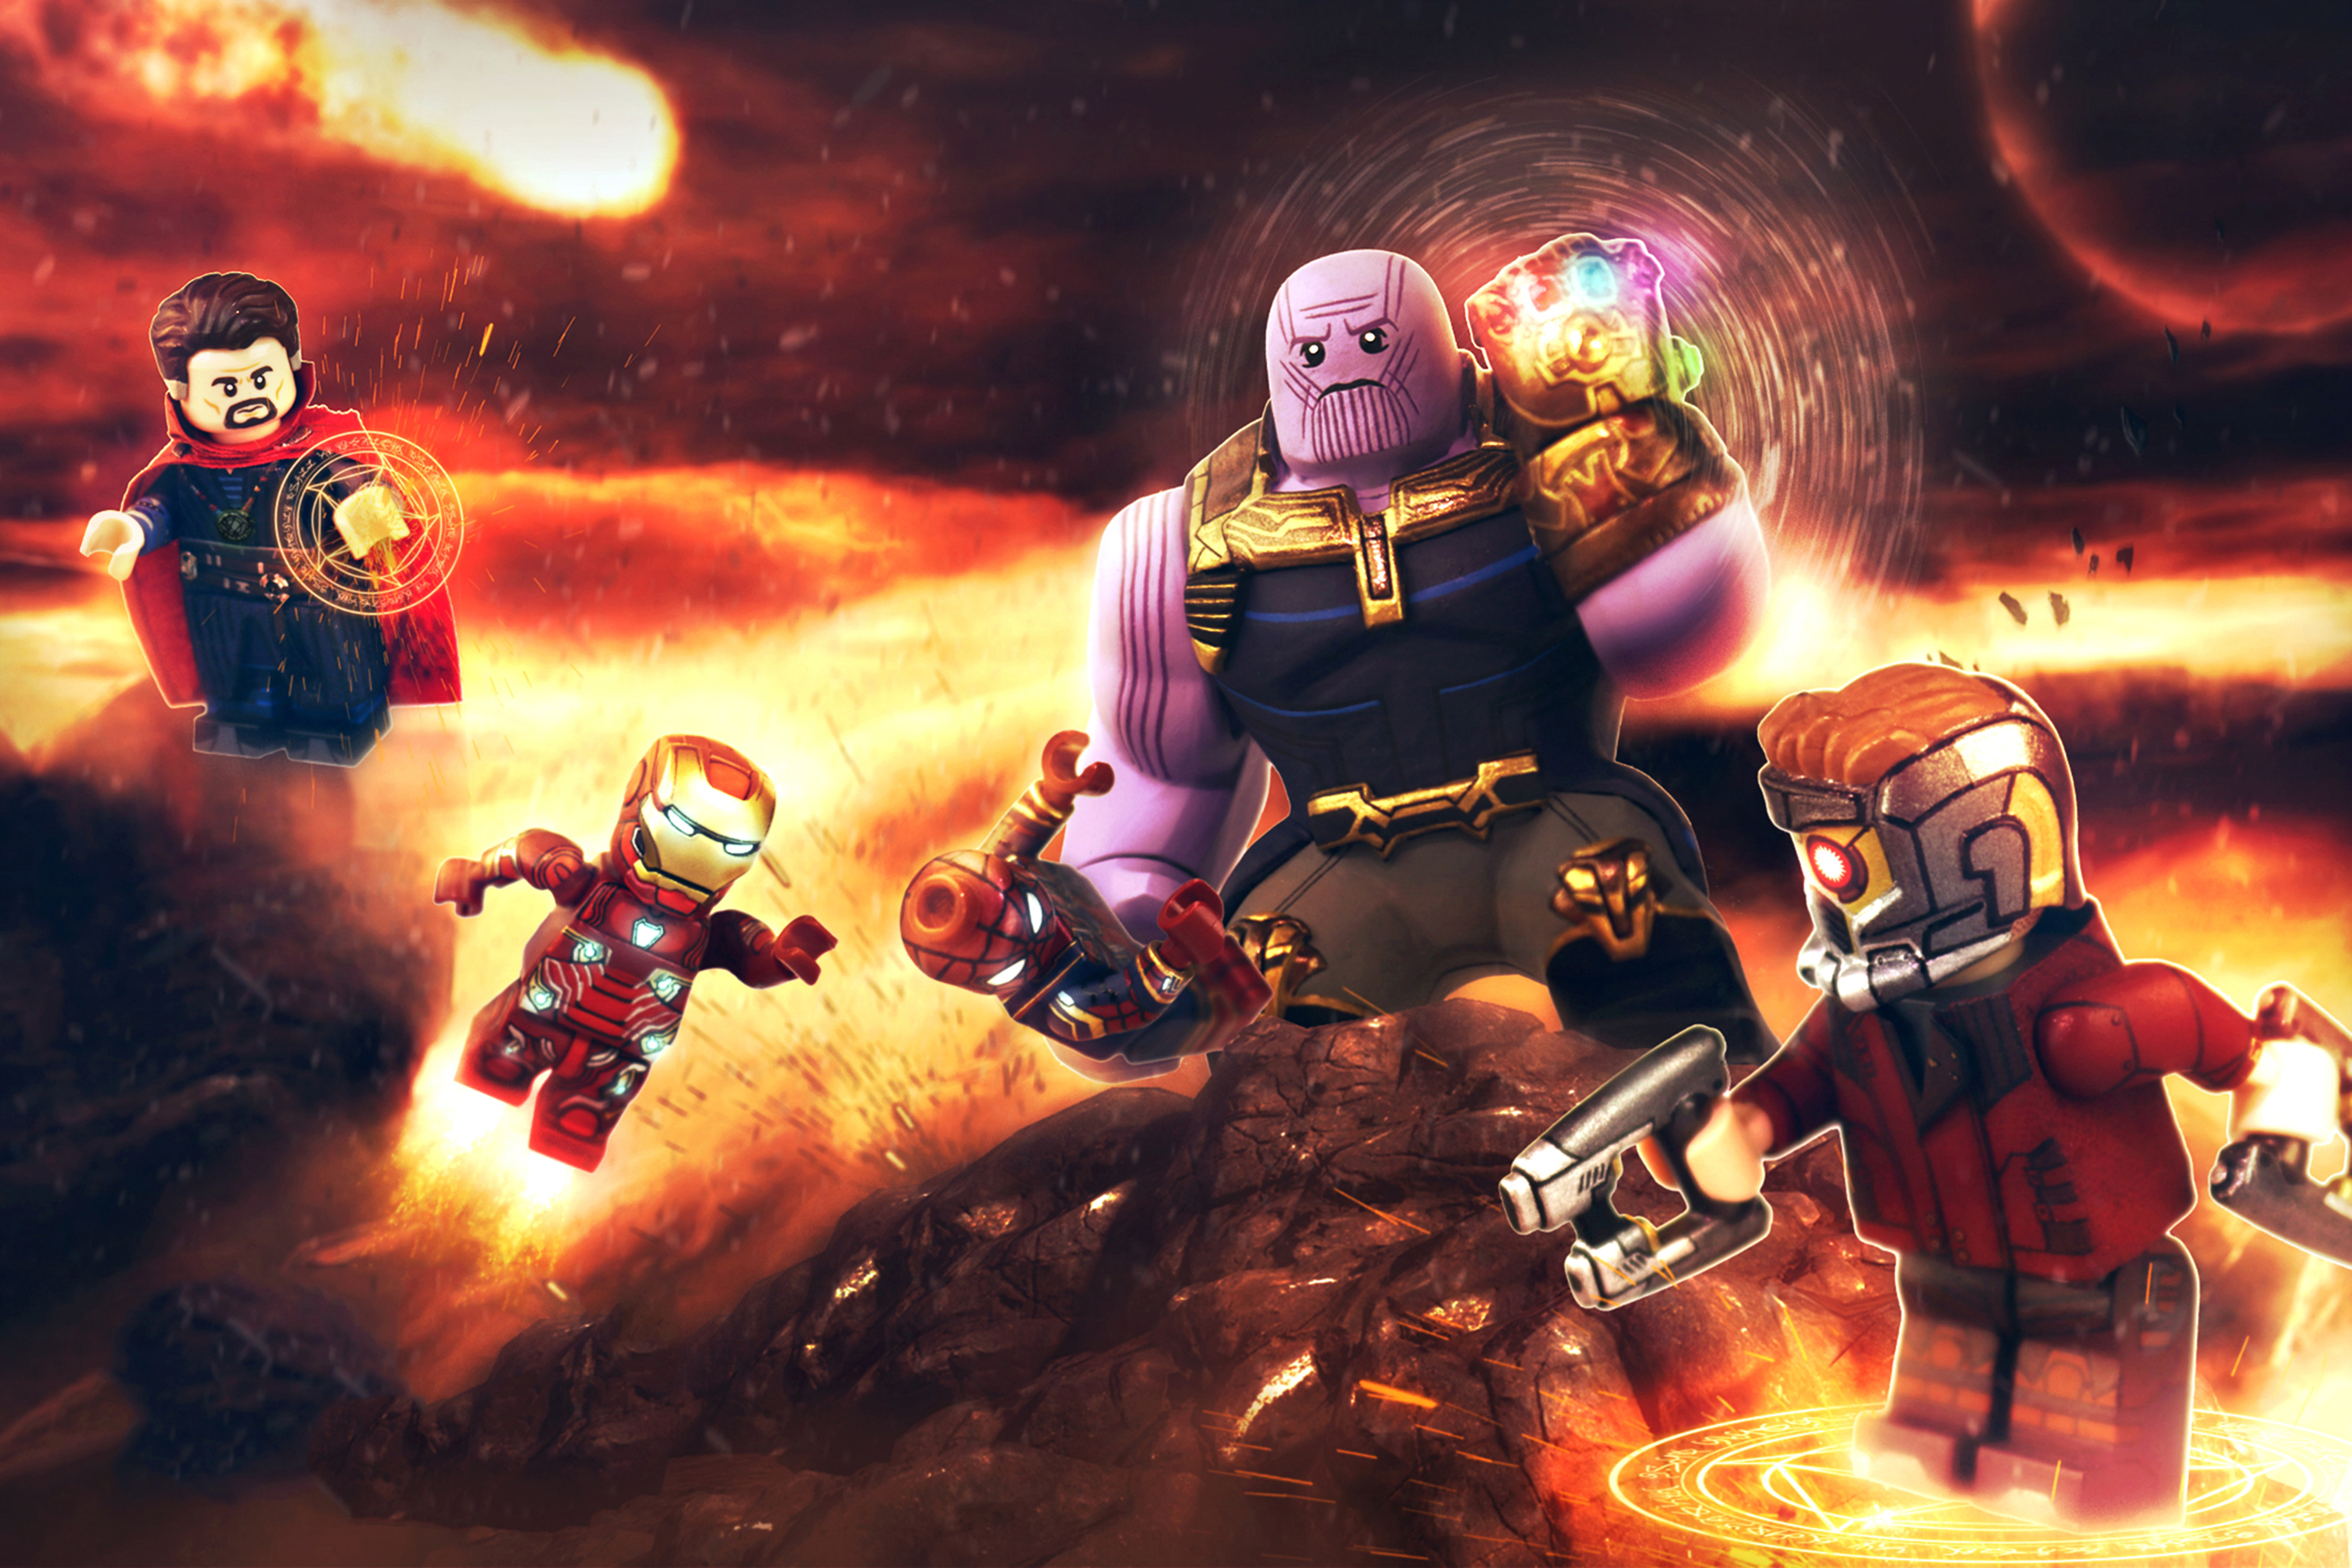 Avengers Infinity War Lego Hd Movies 4k Wallpapers Images